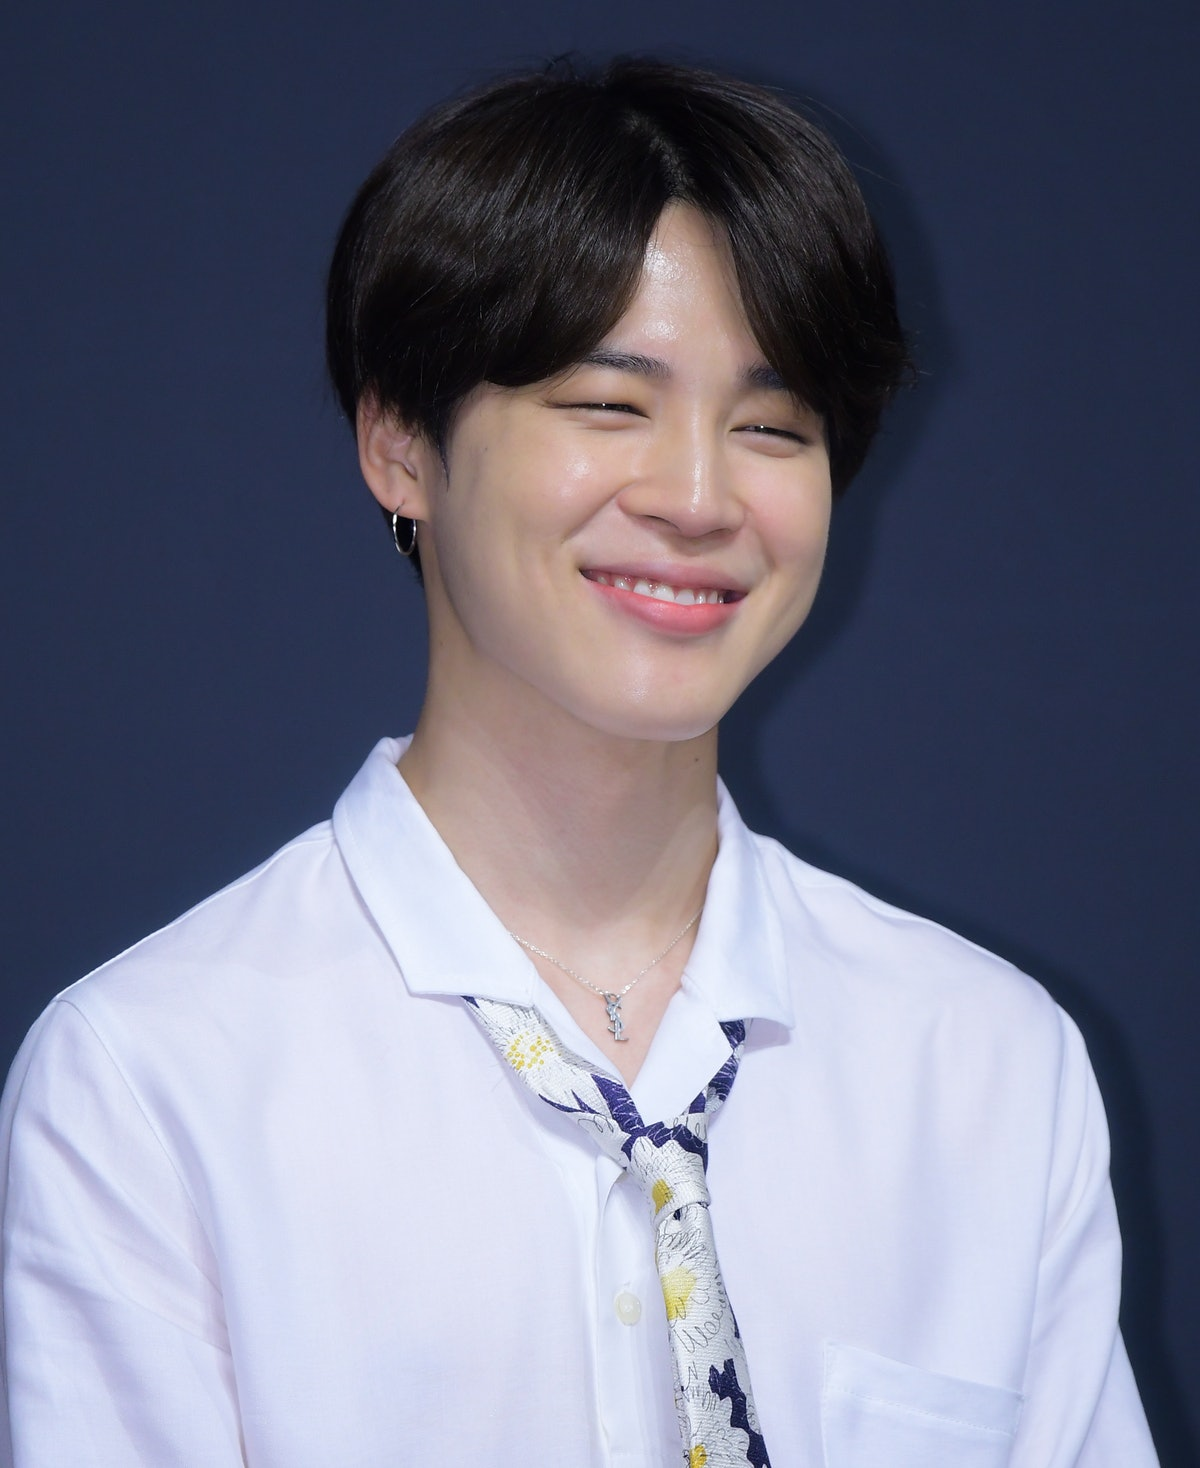 SEOUL, SOUTH KOREA - MAY 24: Jimin of BTS attends press conference for the BTS's Third Album 'LOVE Y...